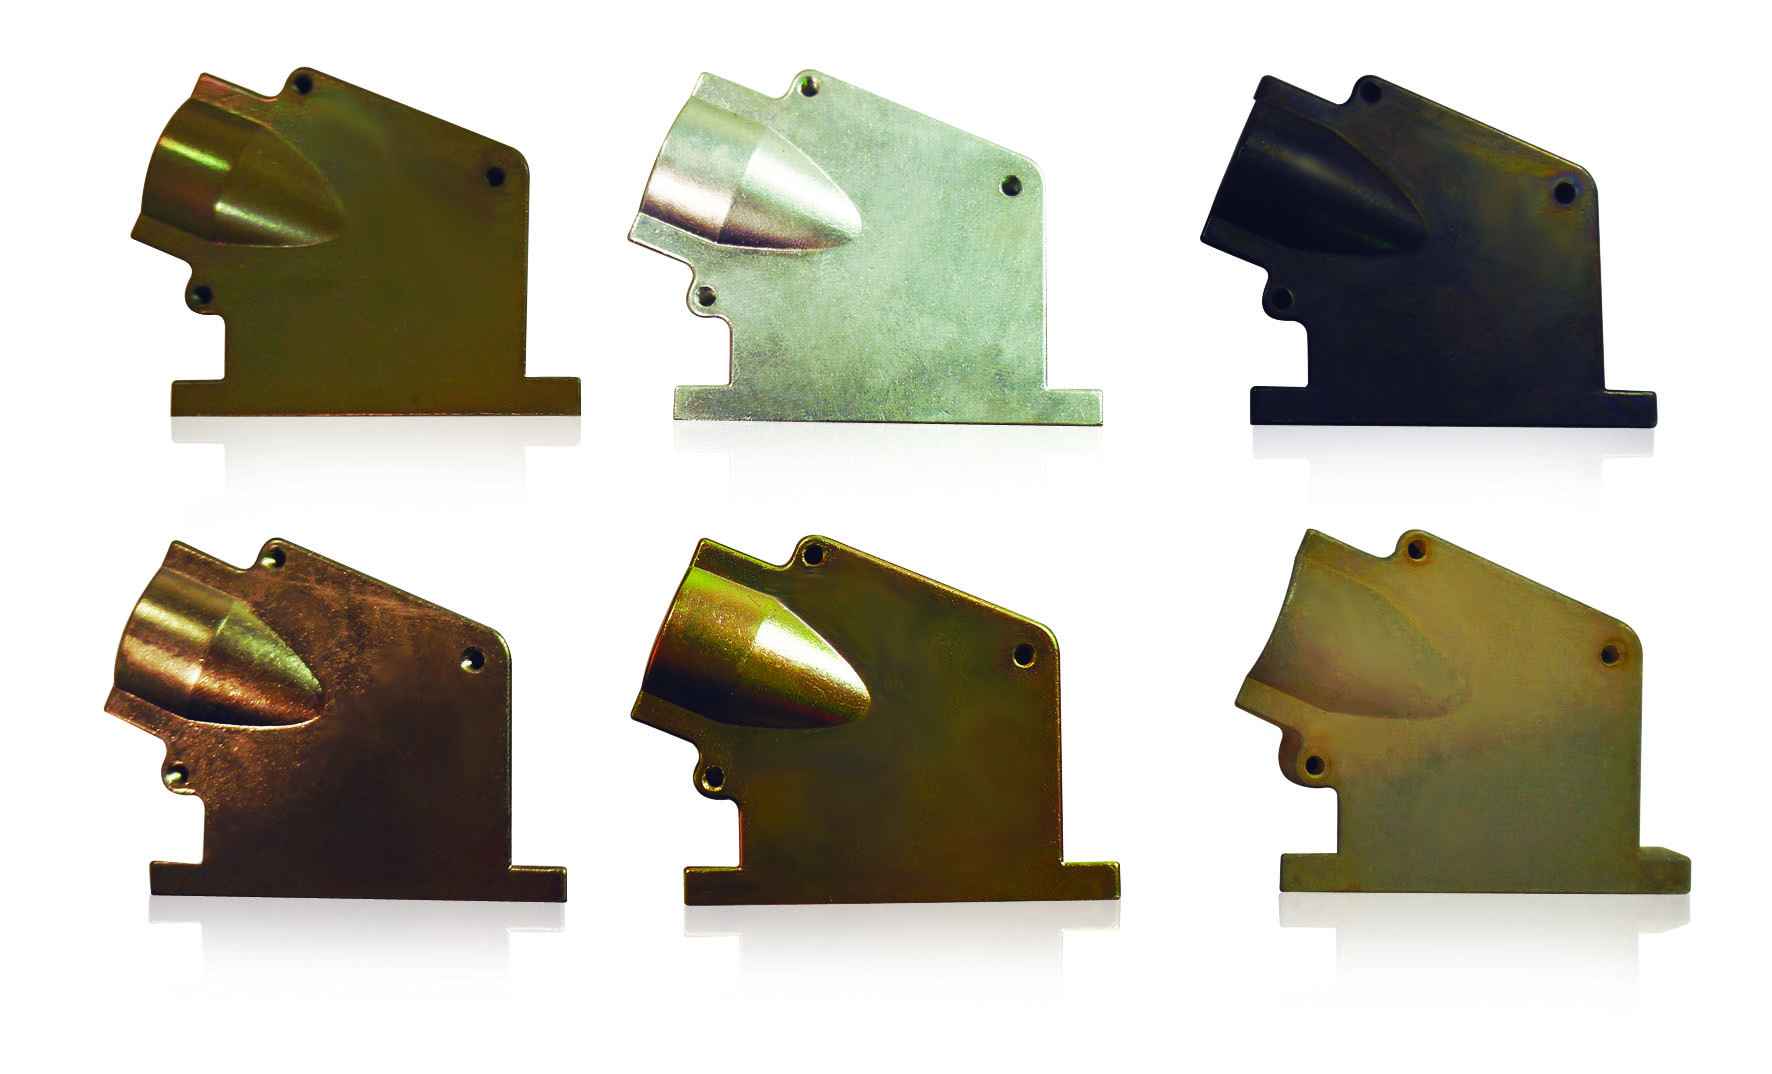 Six different surface finishes